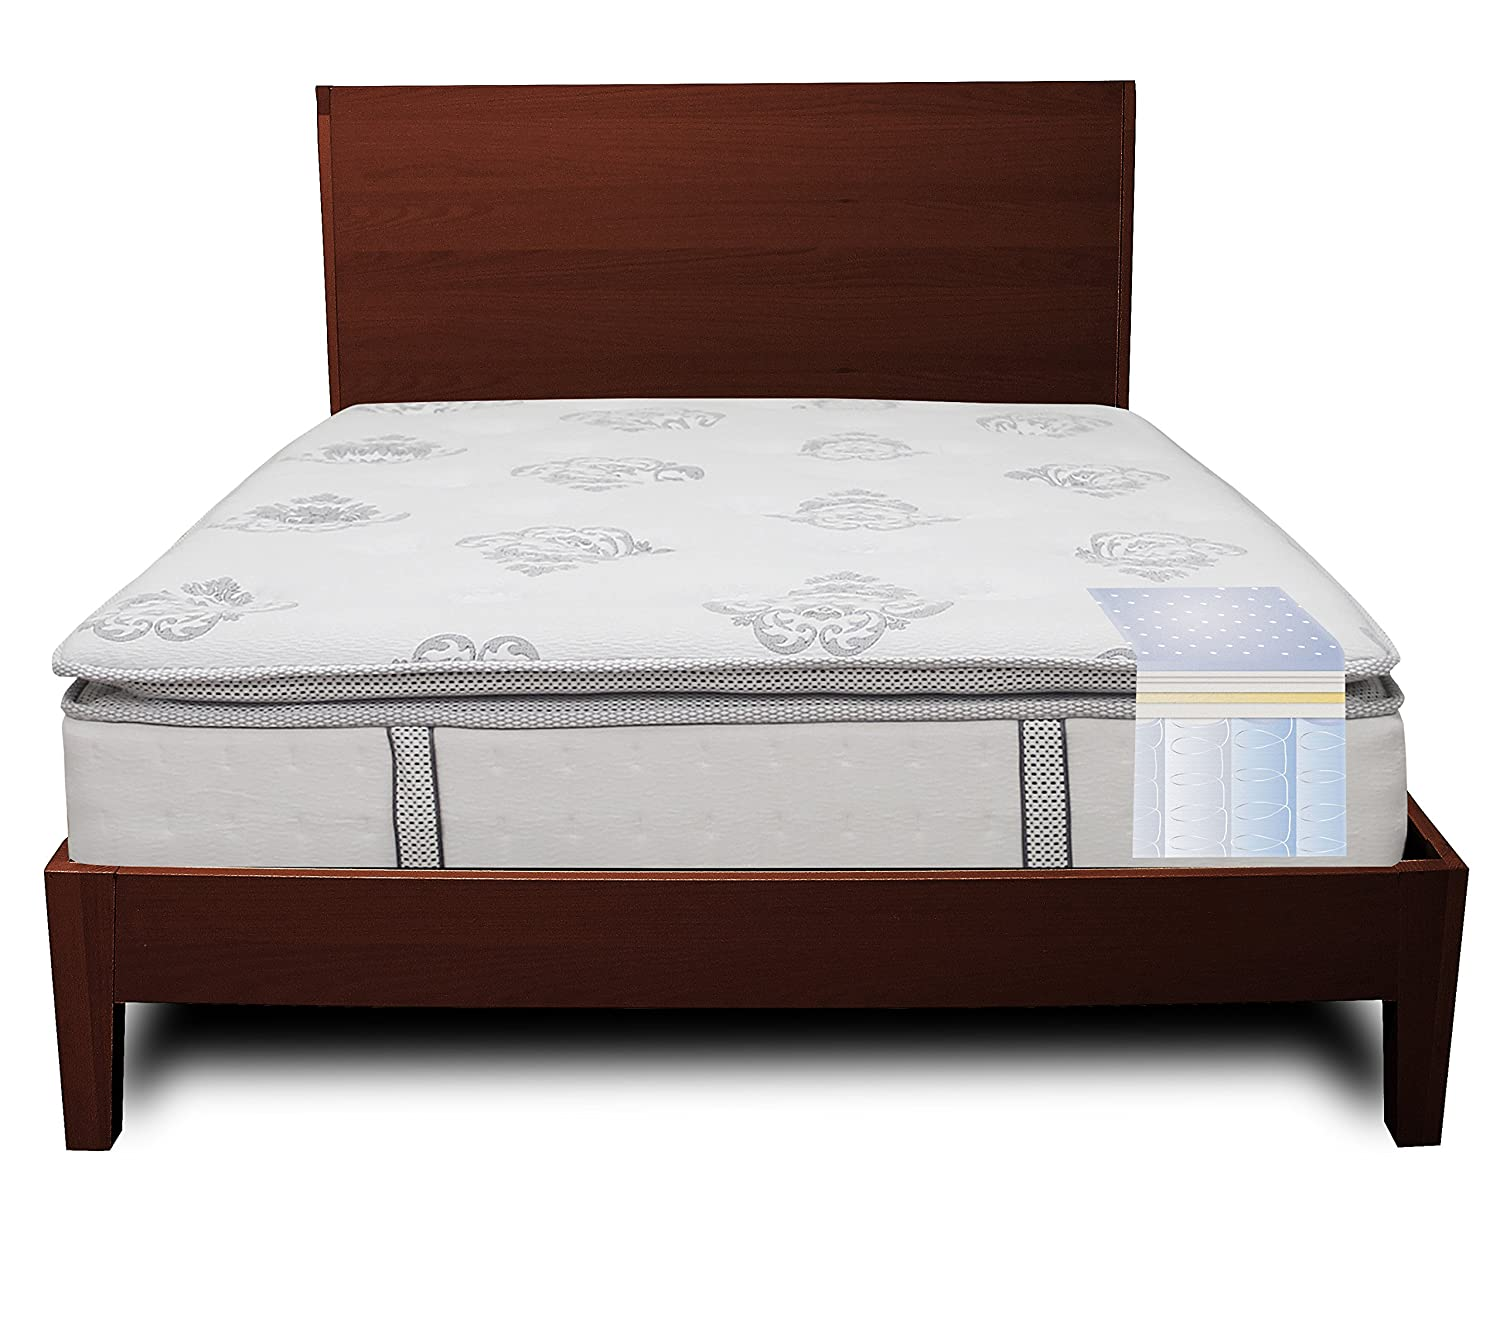 Classic Brands Mercer 12-Inch Hybrid Cool Gel Memory Foam and Innerspring  Mattress, Queen Size: Amazon.ca: Home & Kitchen